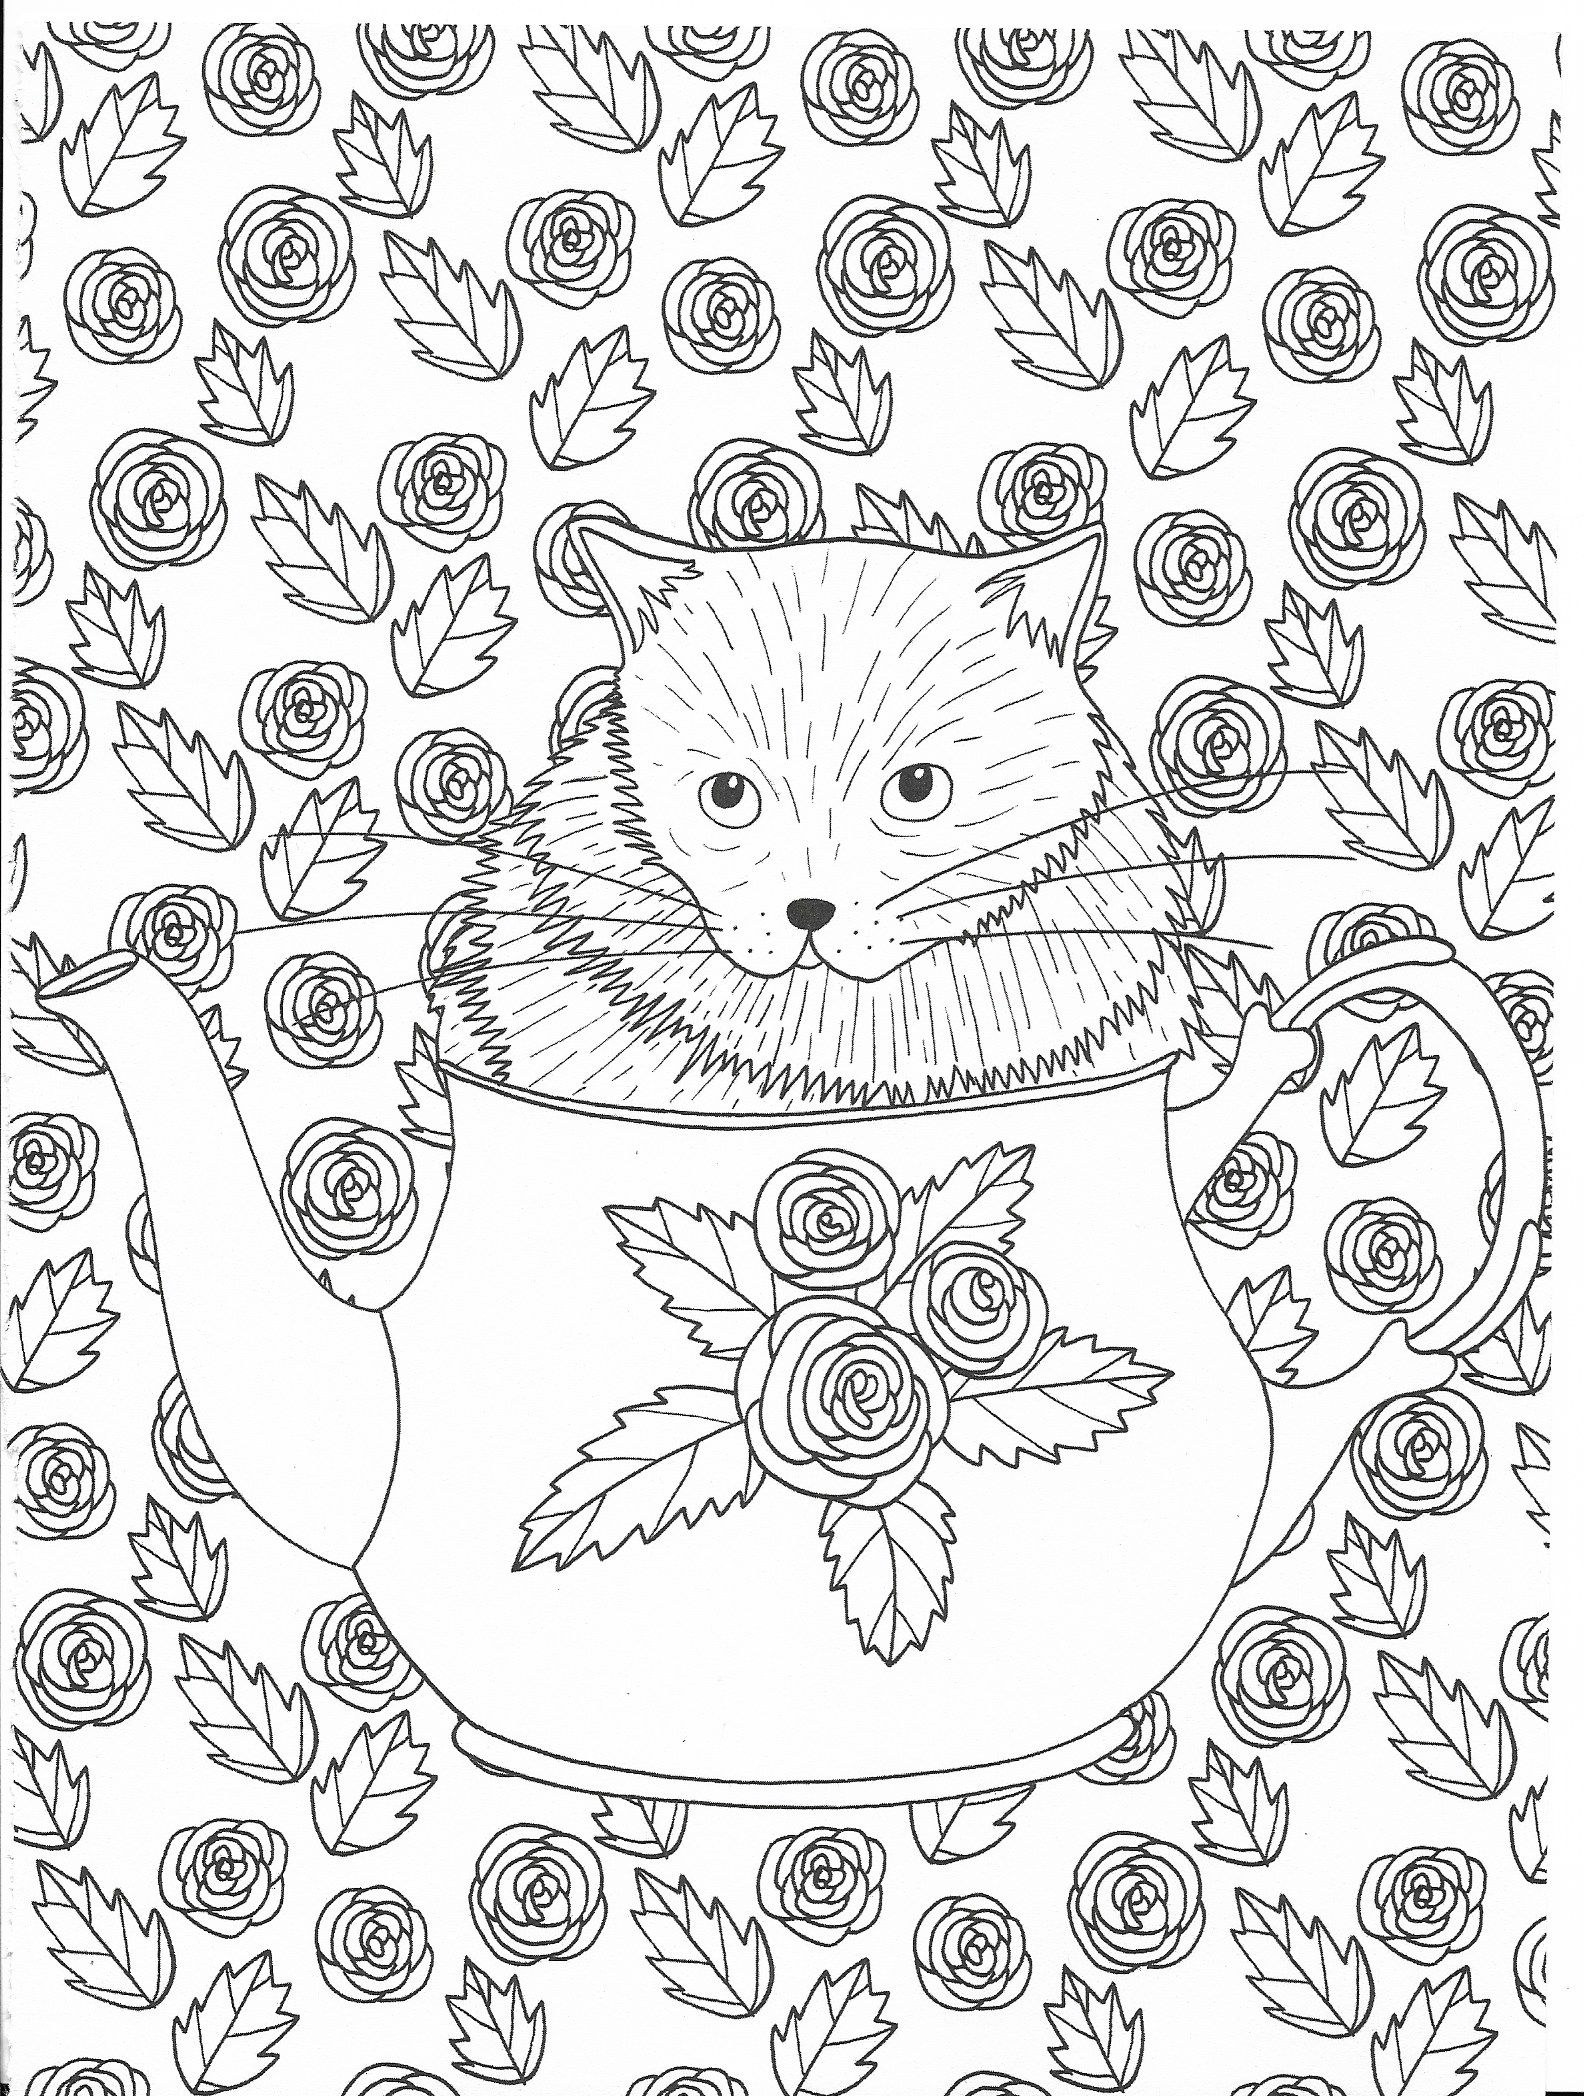 Pin By Wanda Twellman On Just Cats Coloring 2 Cat Coloring Book Cat Coloring Page Coloring Books